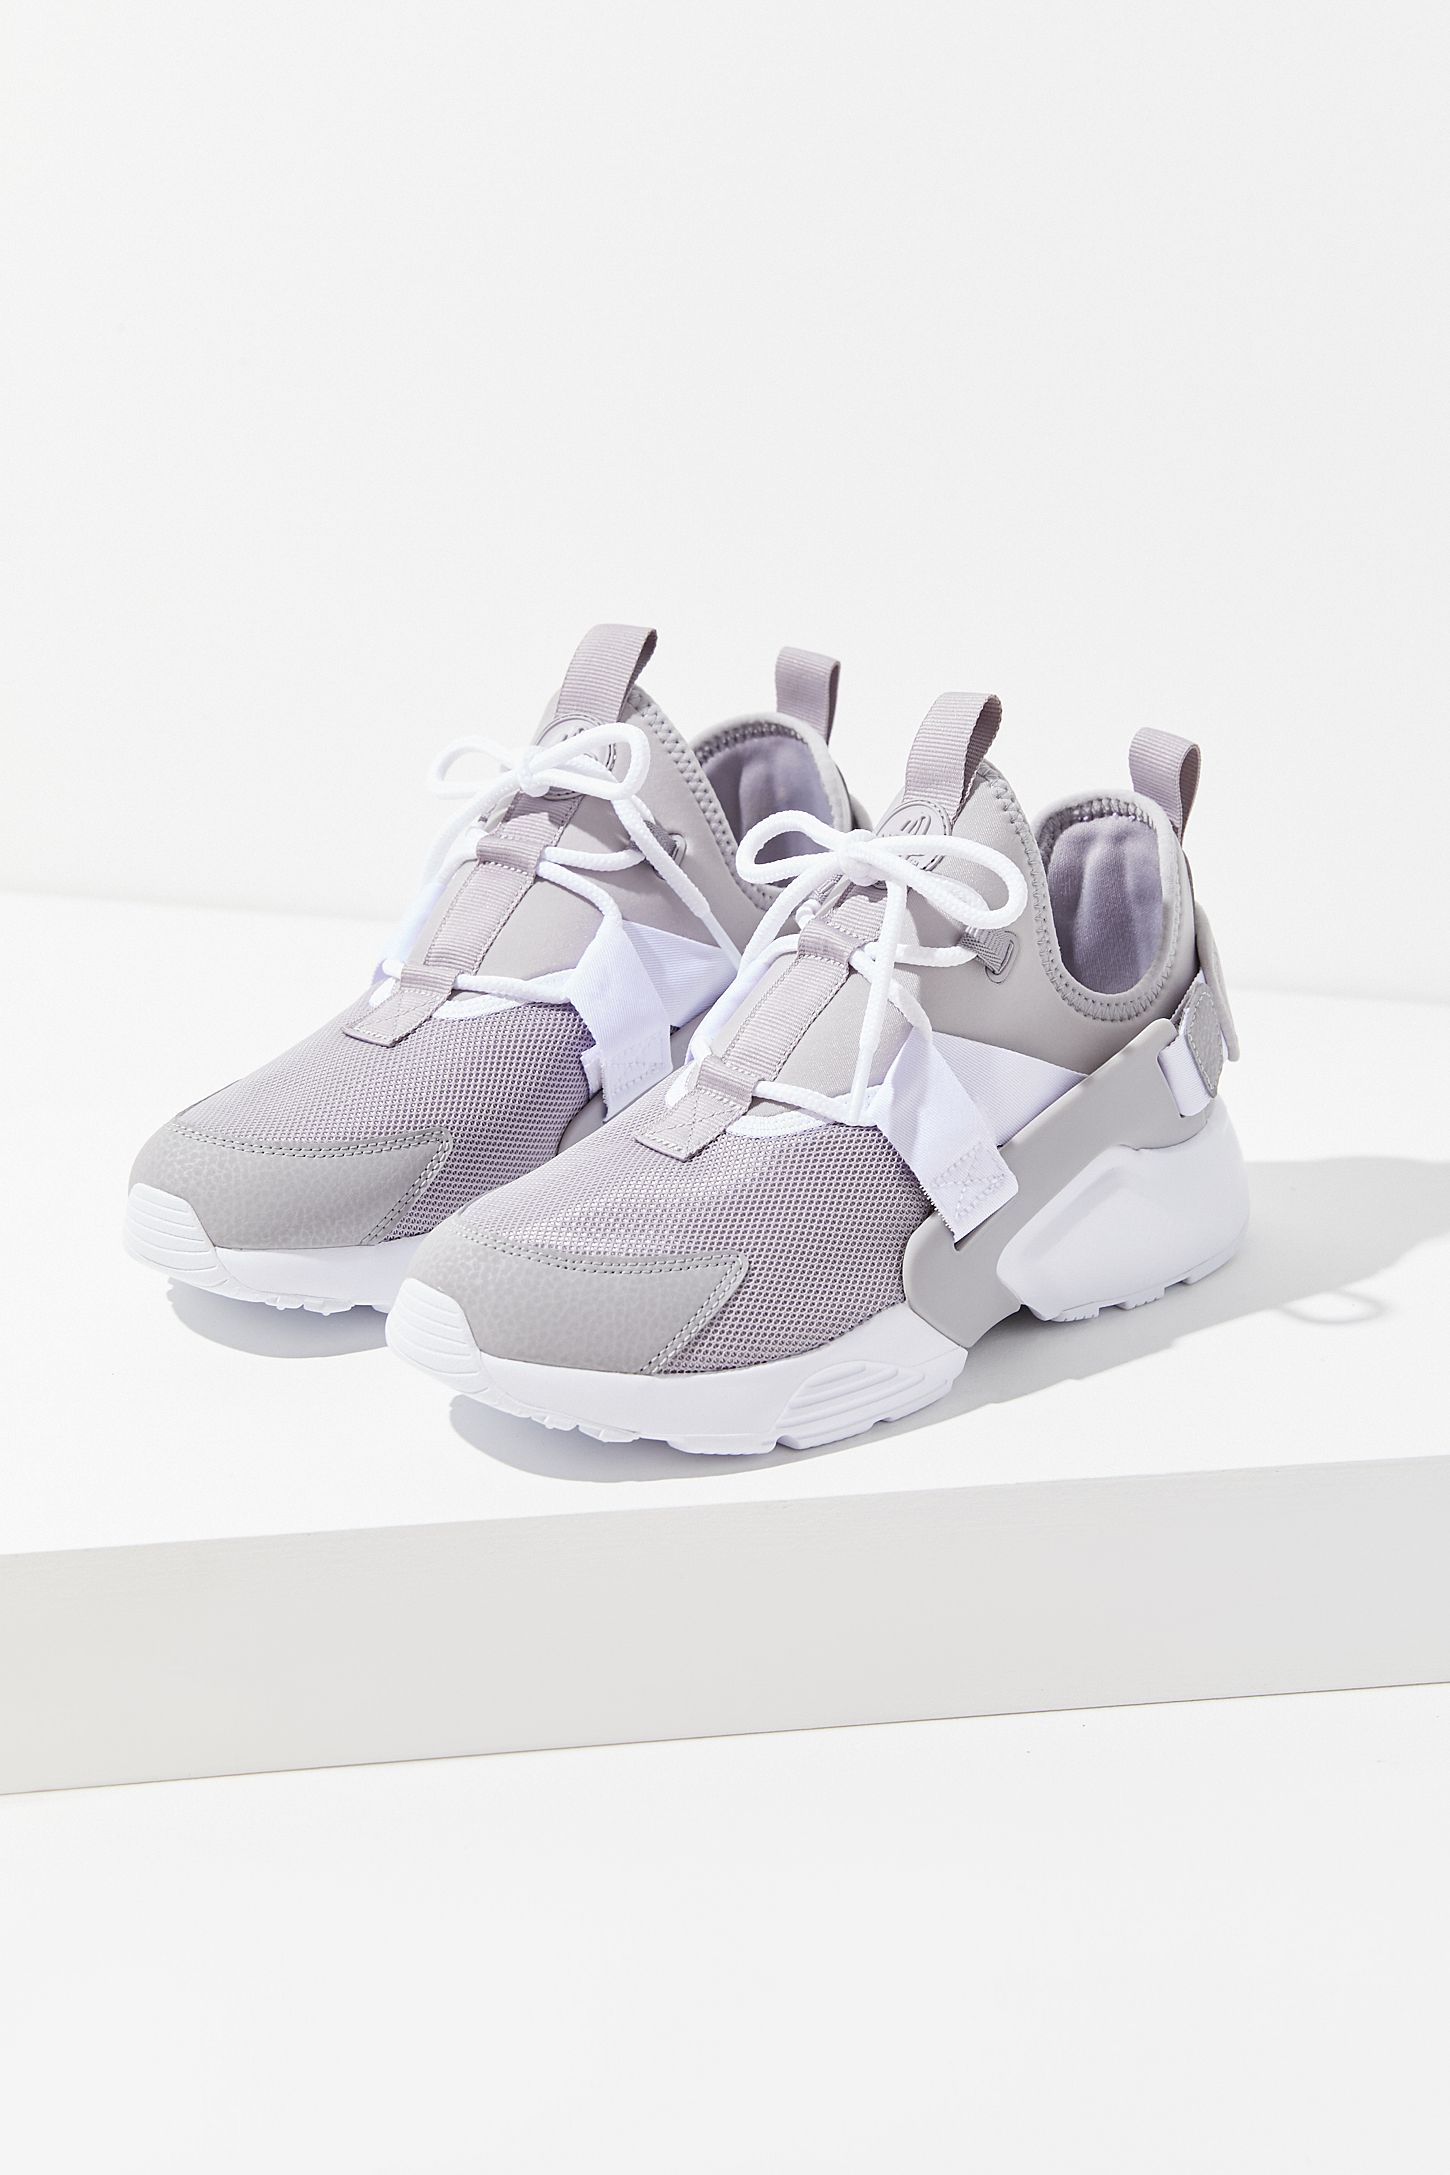 c27e83411a6a Nike Air Huarache City Low Grey Sneaker. Tap image to zoom. Hover to zoom.  Double Tap to Zoom